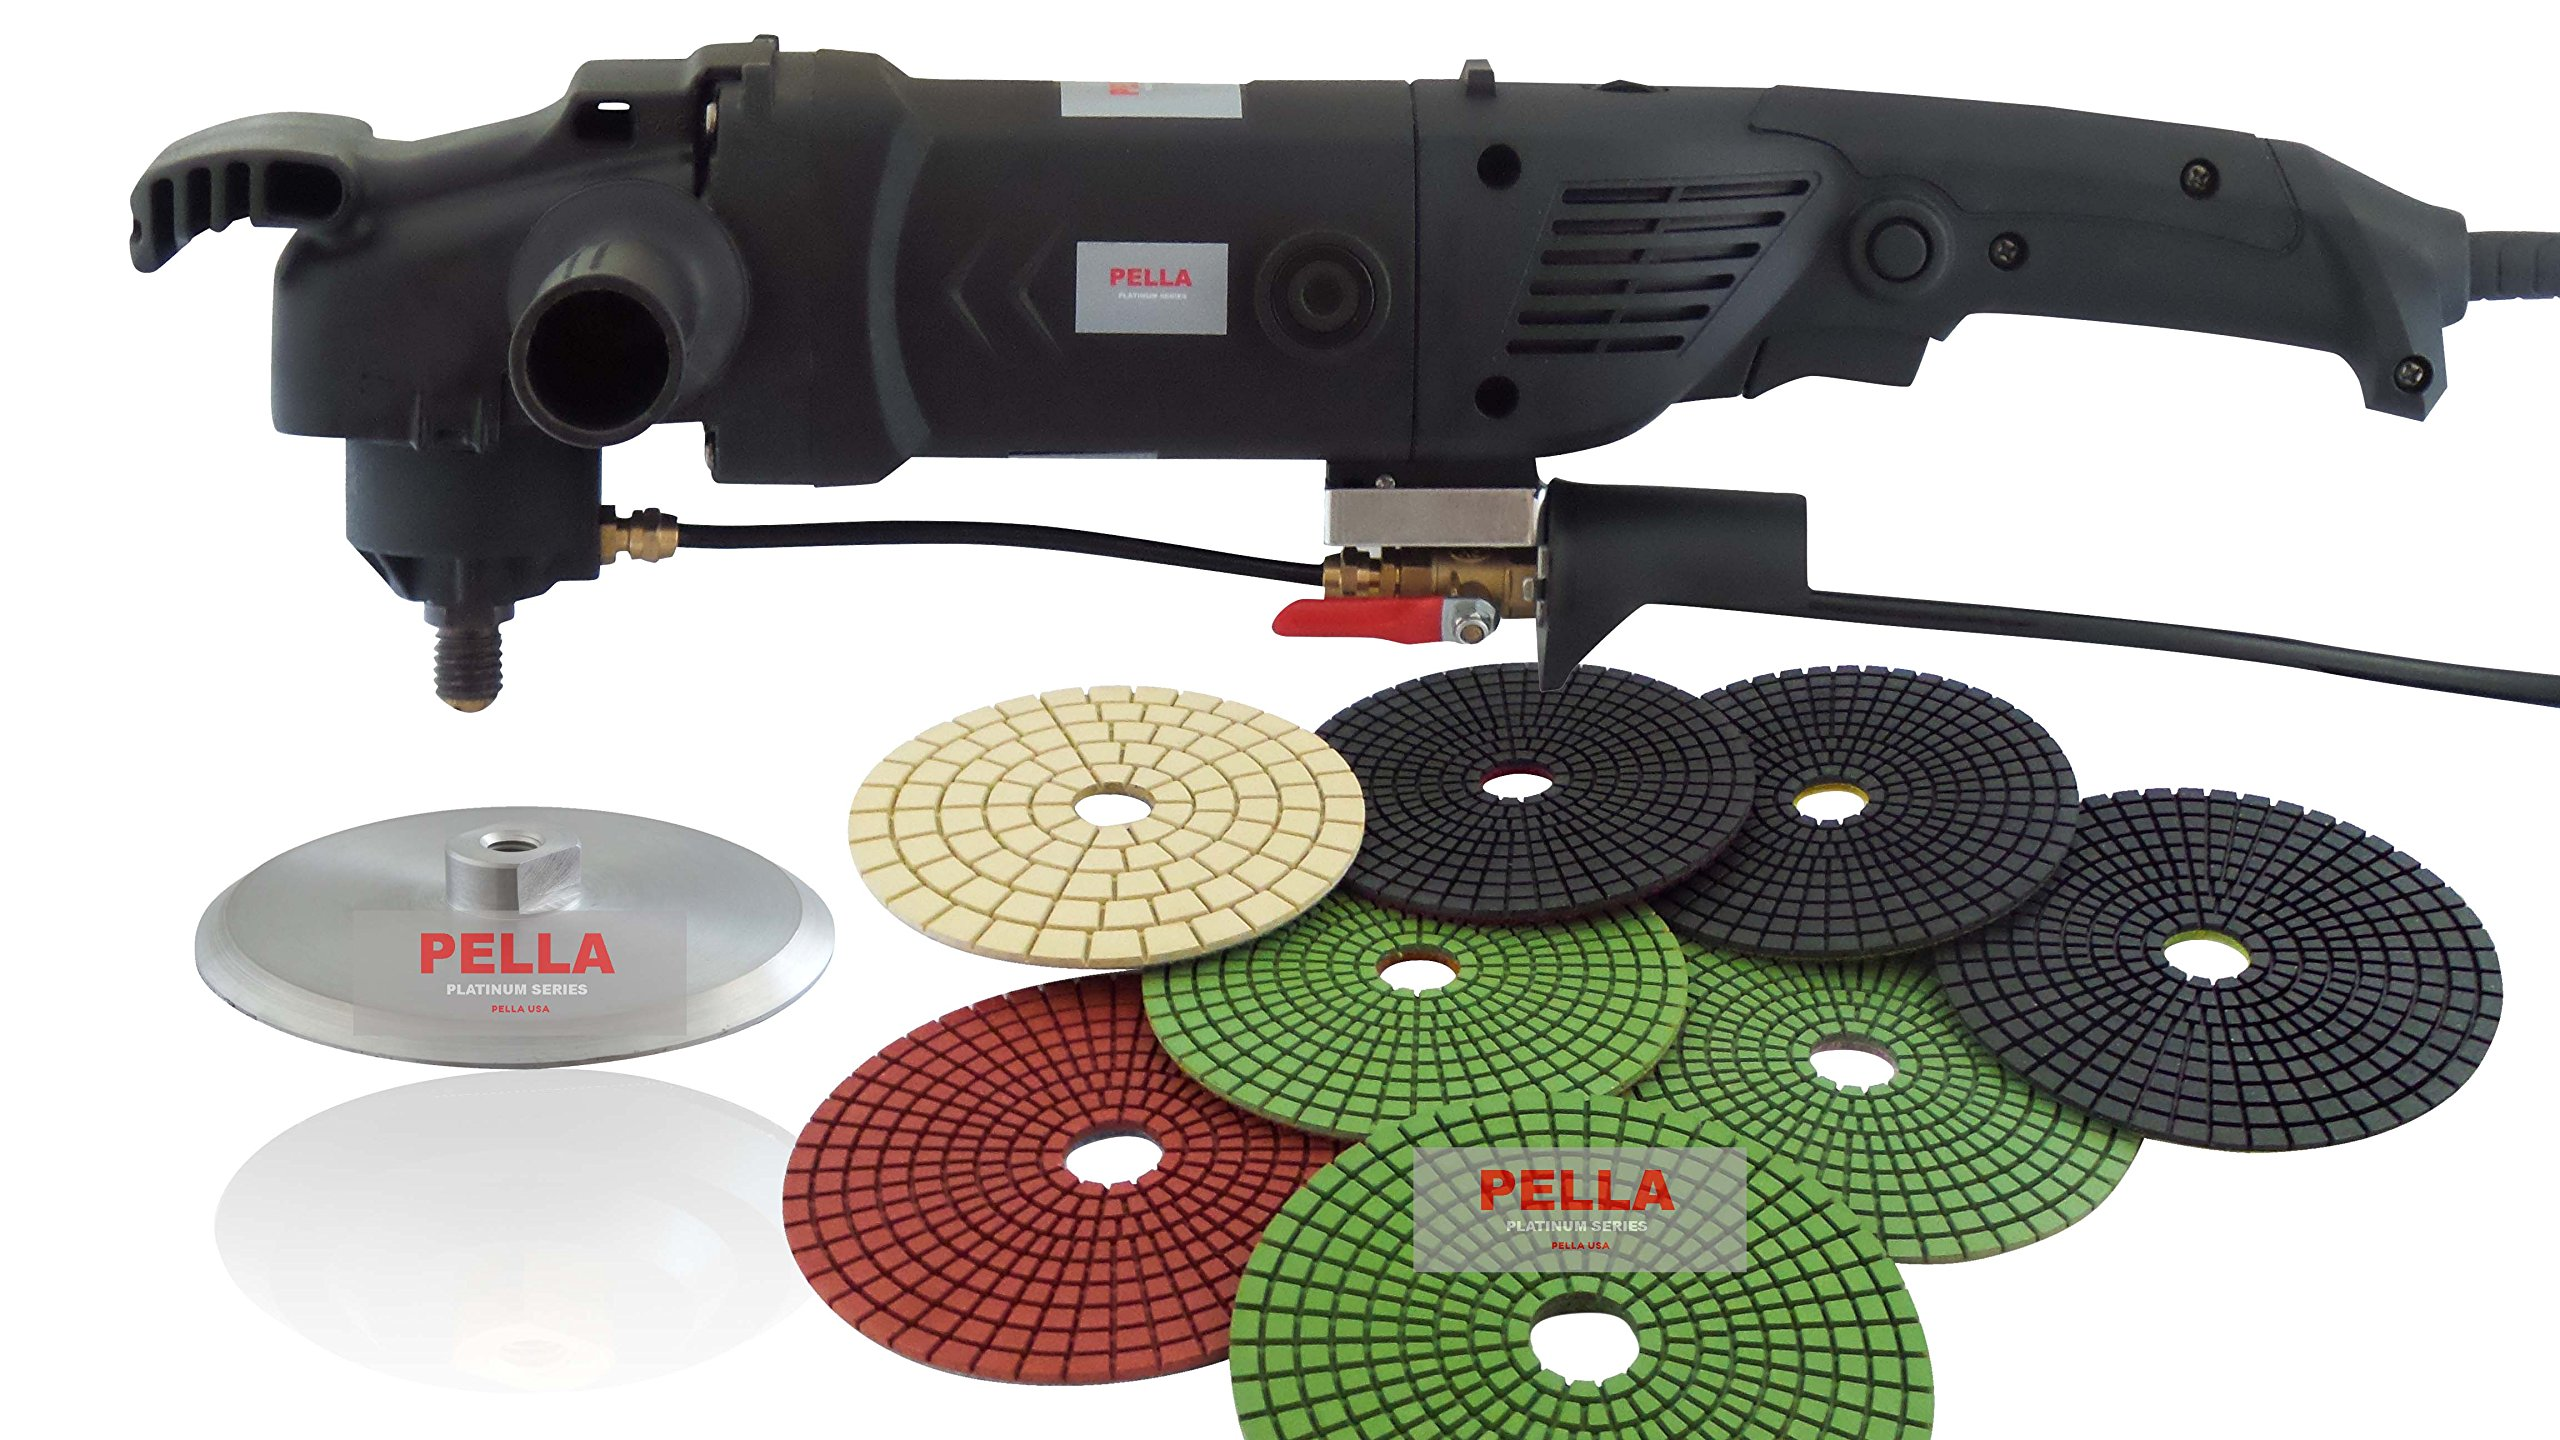 PELLA USA 1200 WATT HEAVY DUTY CONCRETE POLISHER WITH 5'' 8PC PADS AND 5'' ALUMINUM BACKER PAD